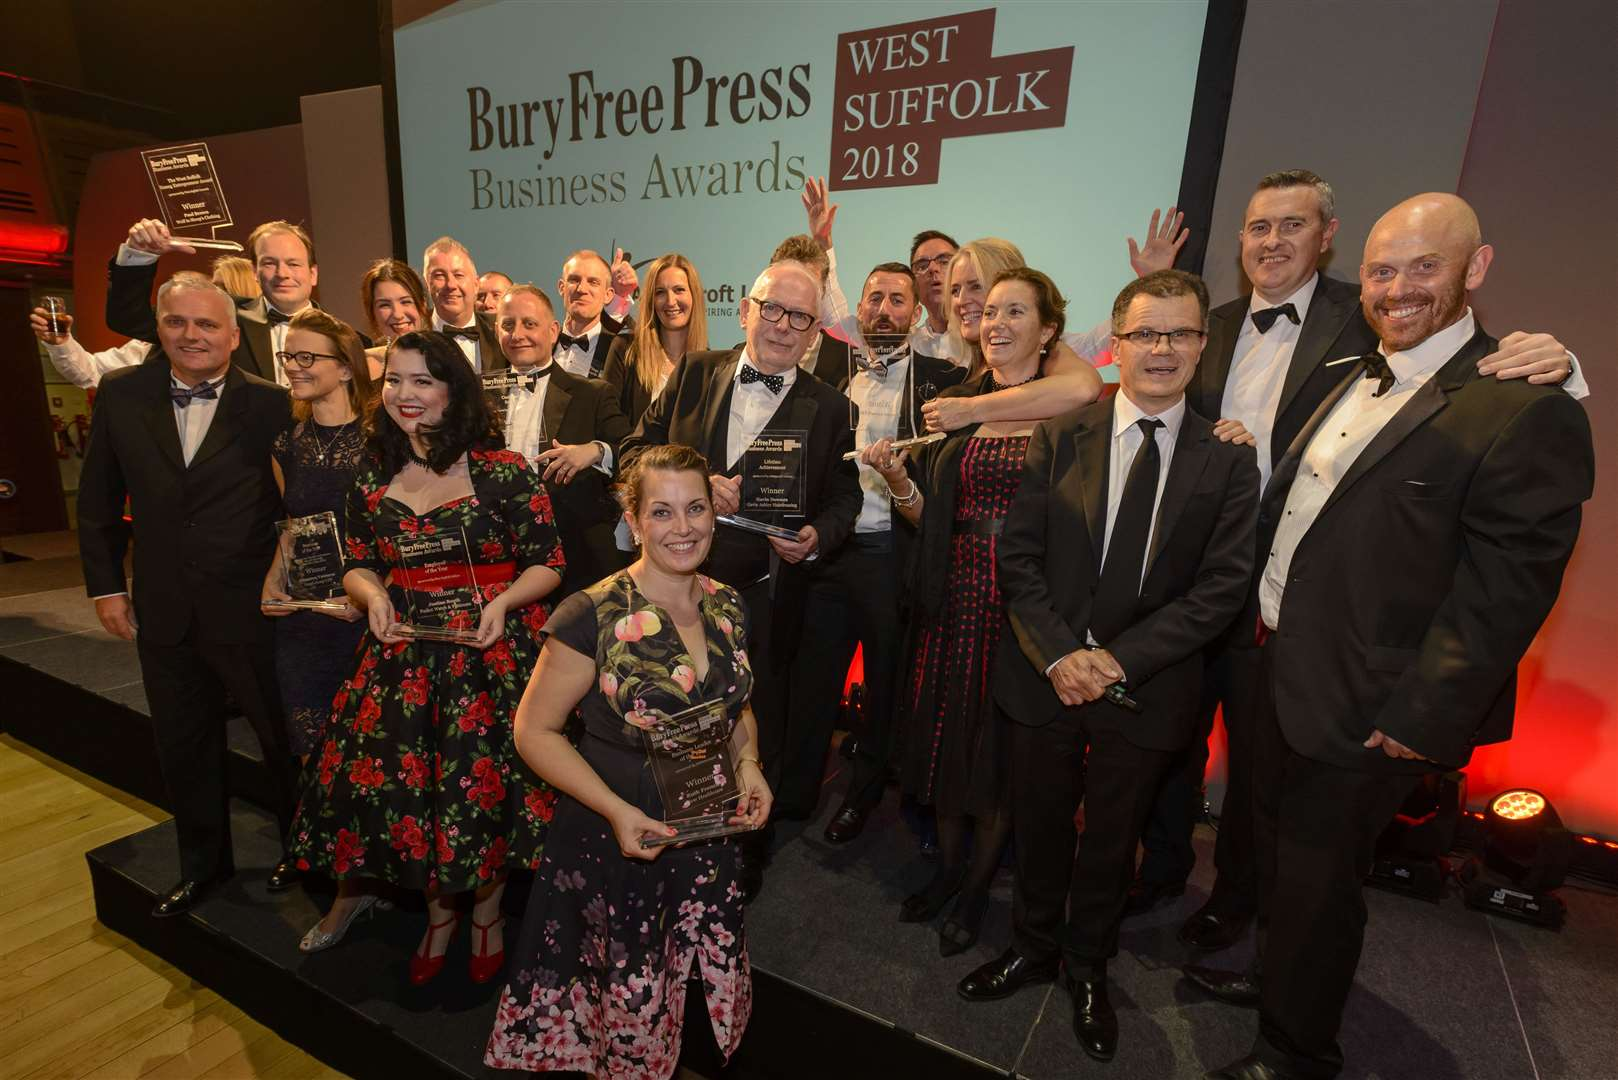 Winners of the Bury Free Press Business Awards 2018. Picture: Mark Bullimore Photography